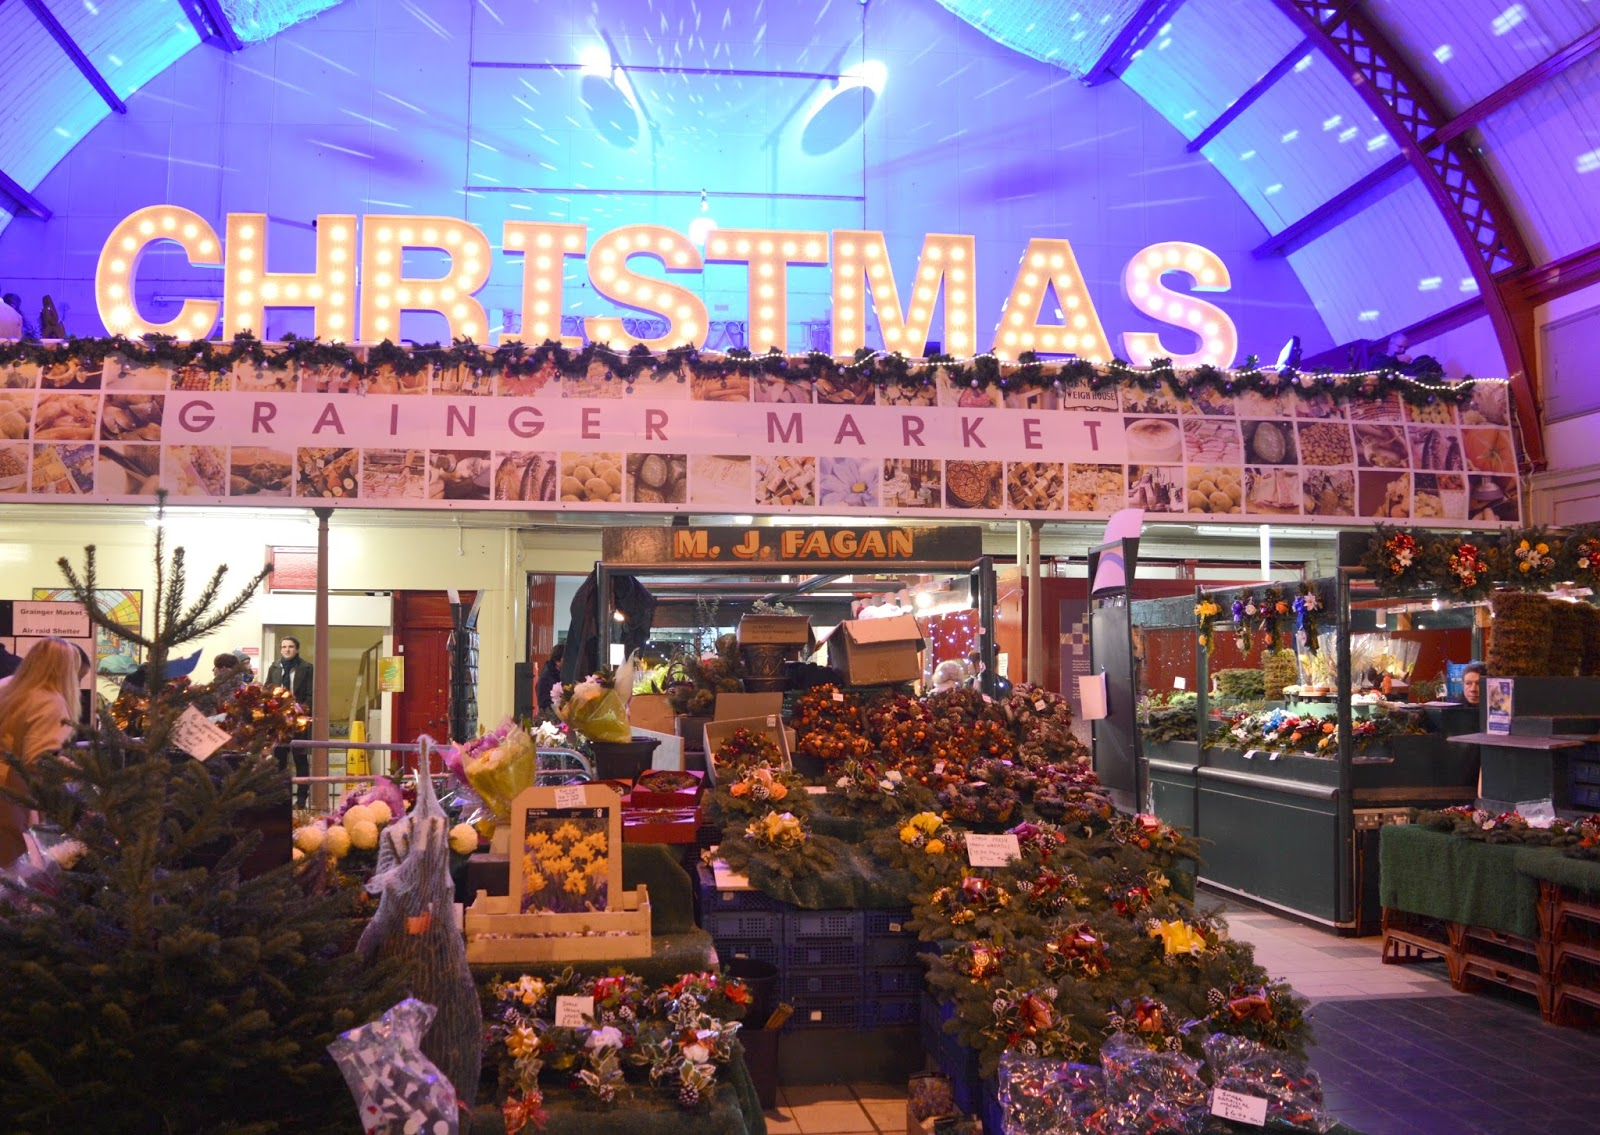 Newcastle Christmas Night Market at Grainger Market